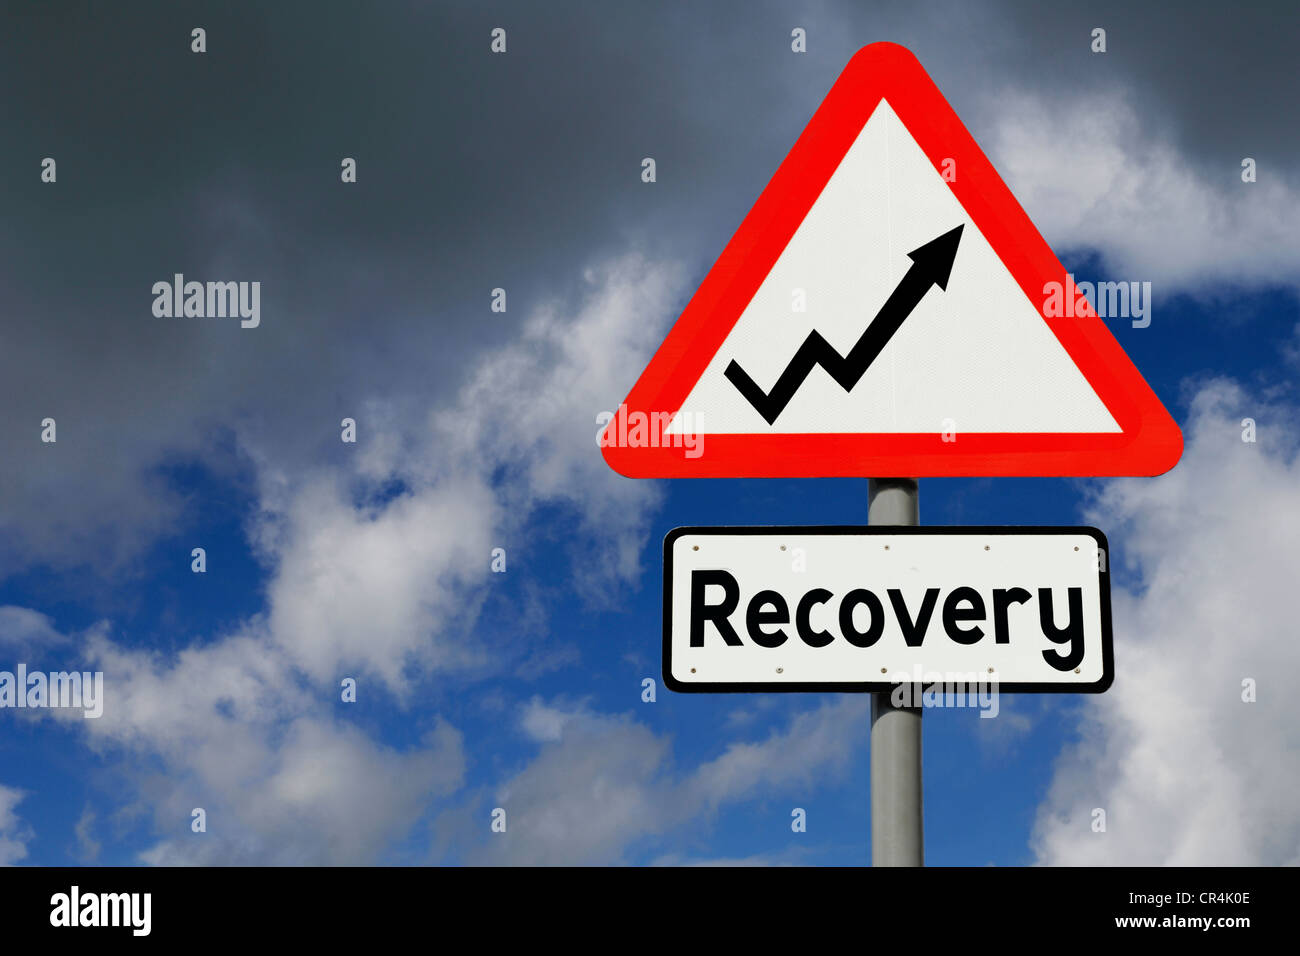 Optimistic roadsign as concept for economic recovery - Stock Image